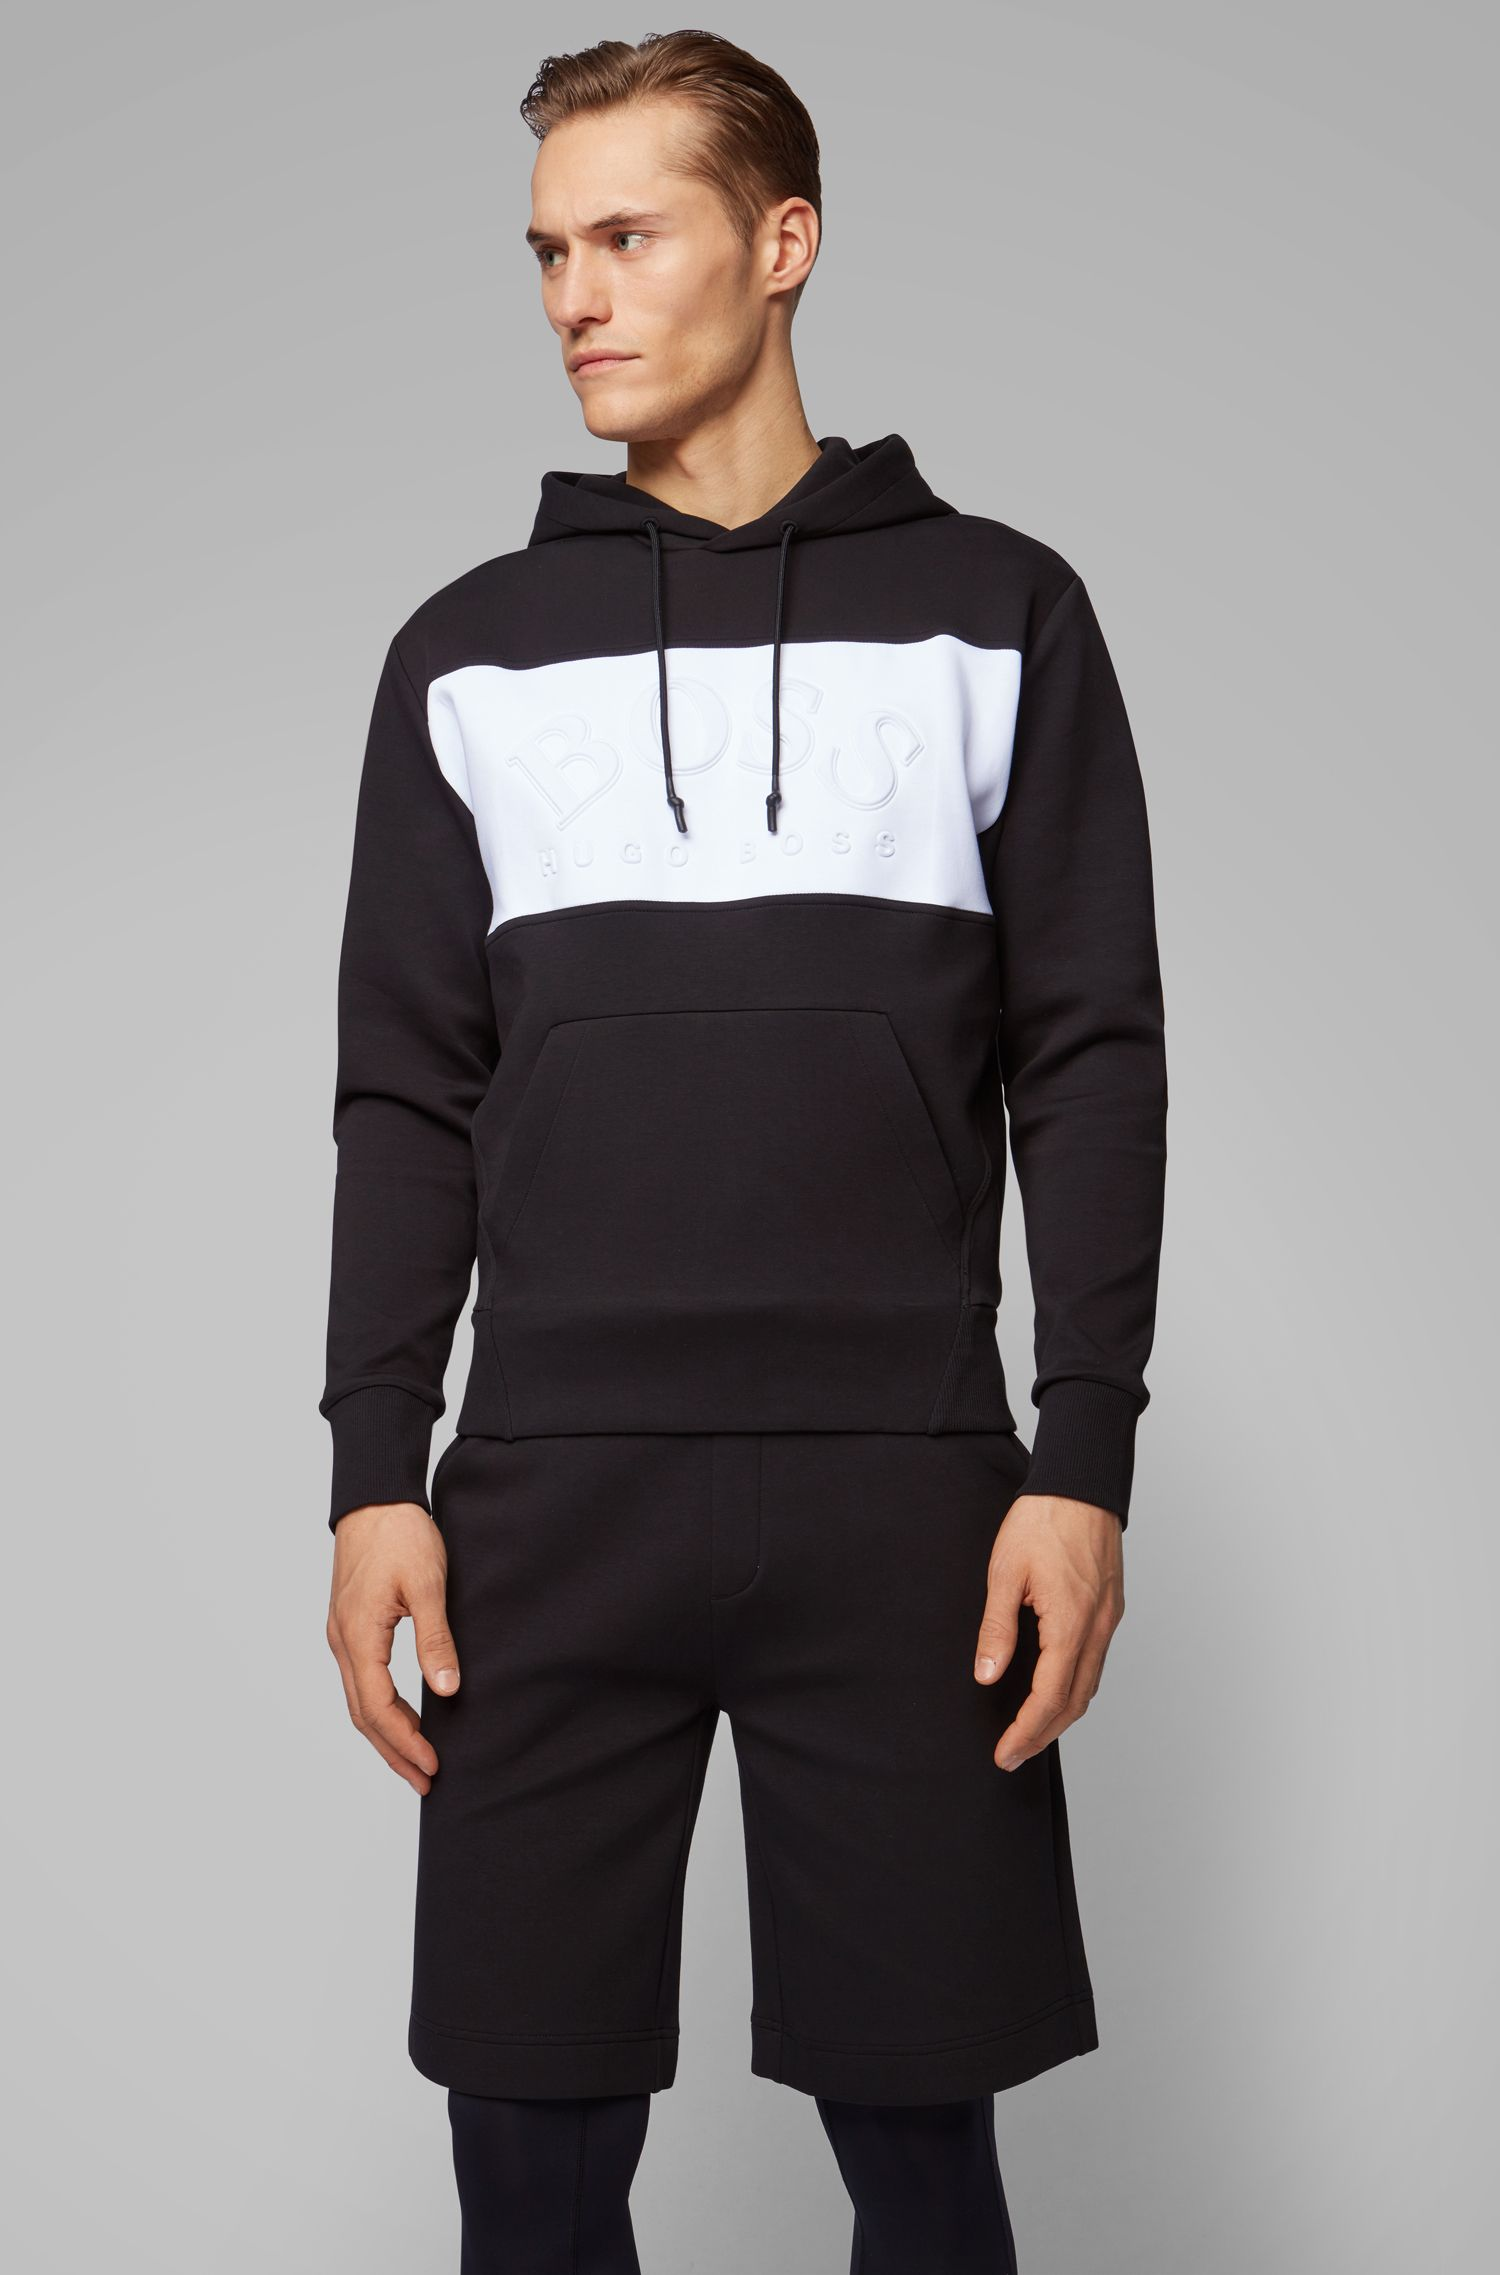 Relaxed-fit hooded sweatshirt with curved logo, Black